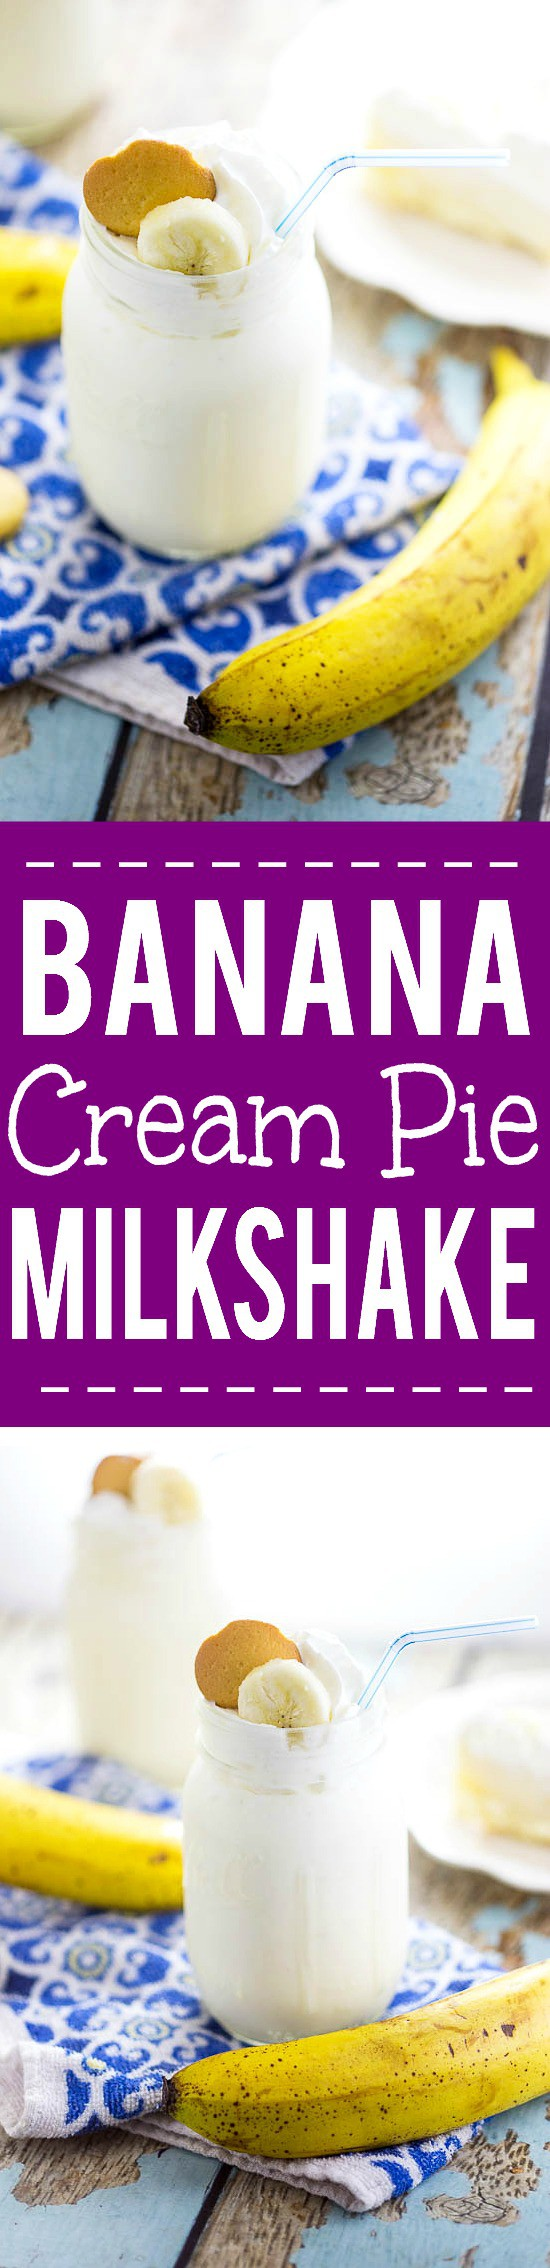 Banana Cream Pie Milkshake Recipe - Two cool, creamy Summer favorites combine into one quick and easy no bake dessert recipe in this simple, scrumptious Banana Cream Pie Milkshake recipe! Top with whipped cream and vanilla wafer cookies for a special comfort food touch!